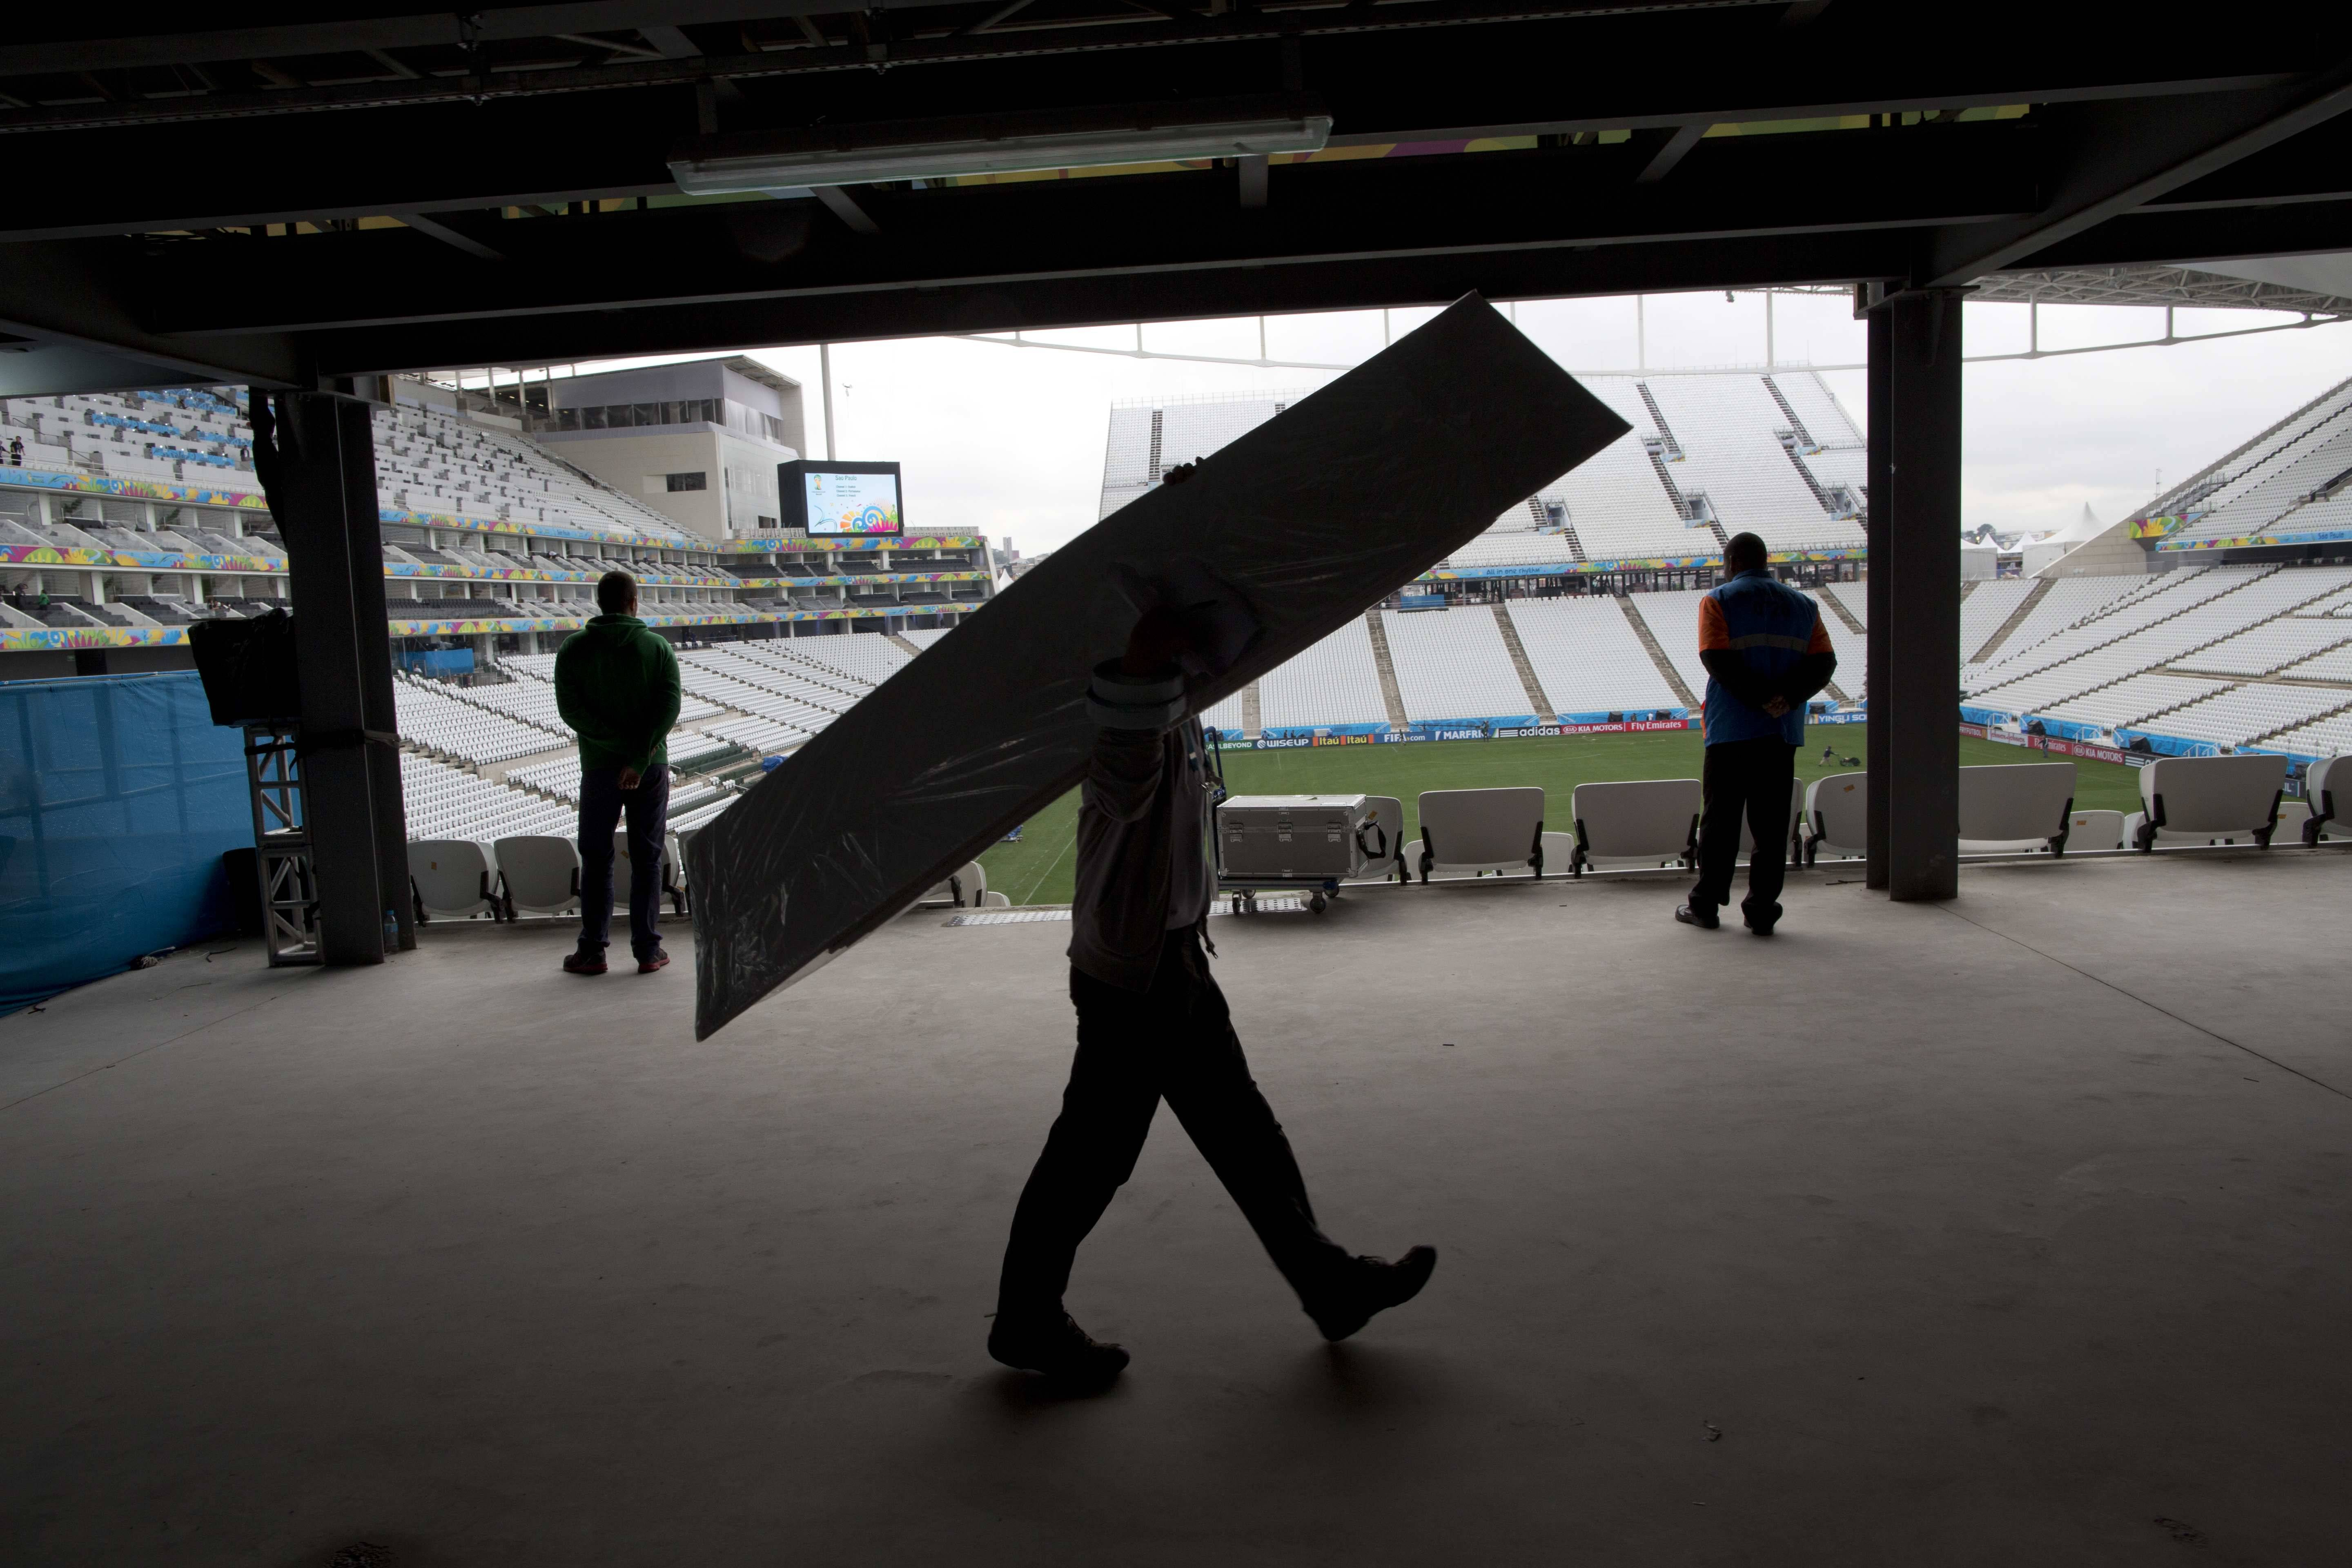 A worker carries cardboard inside Arena Corinthians stadium in Sao Paulo, Brazil, Wednesday, June 11, 2014. The World Cup soccer tournament starts Thursday.